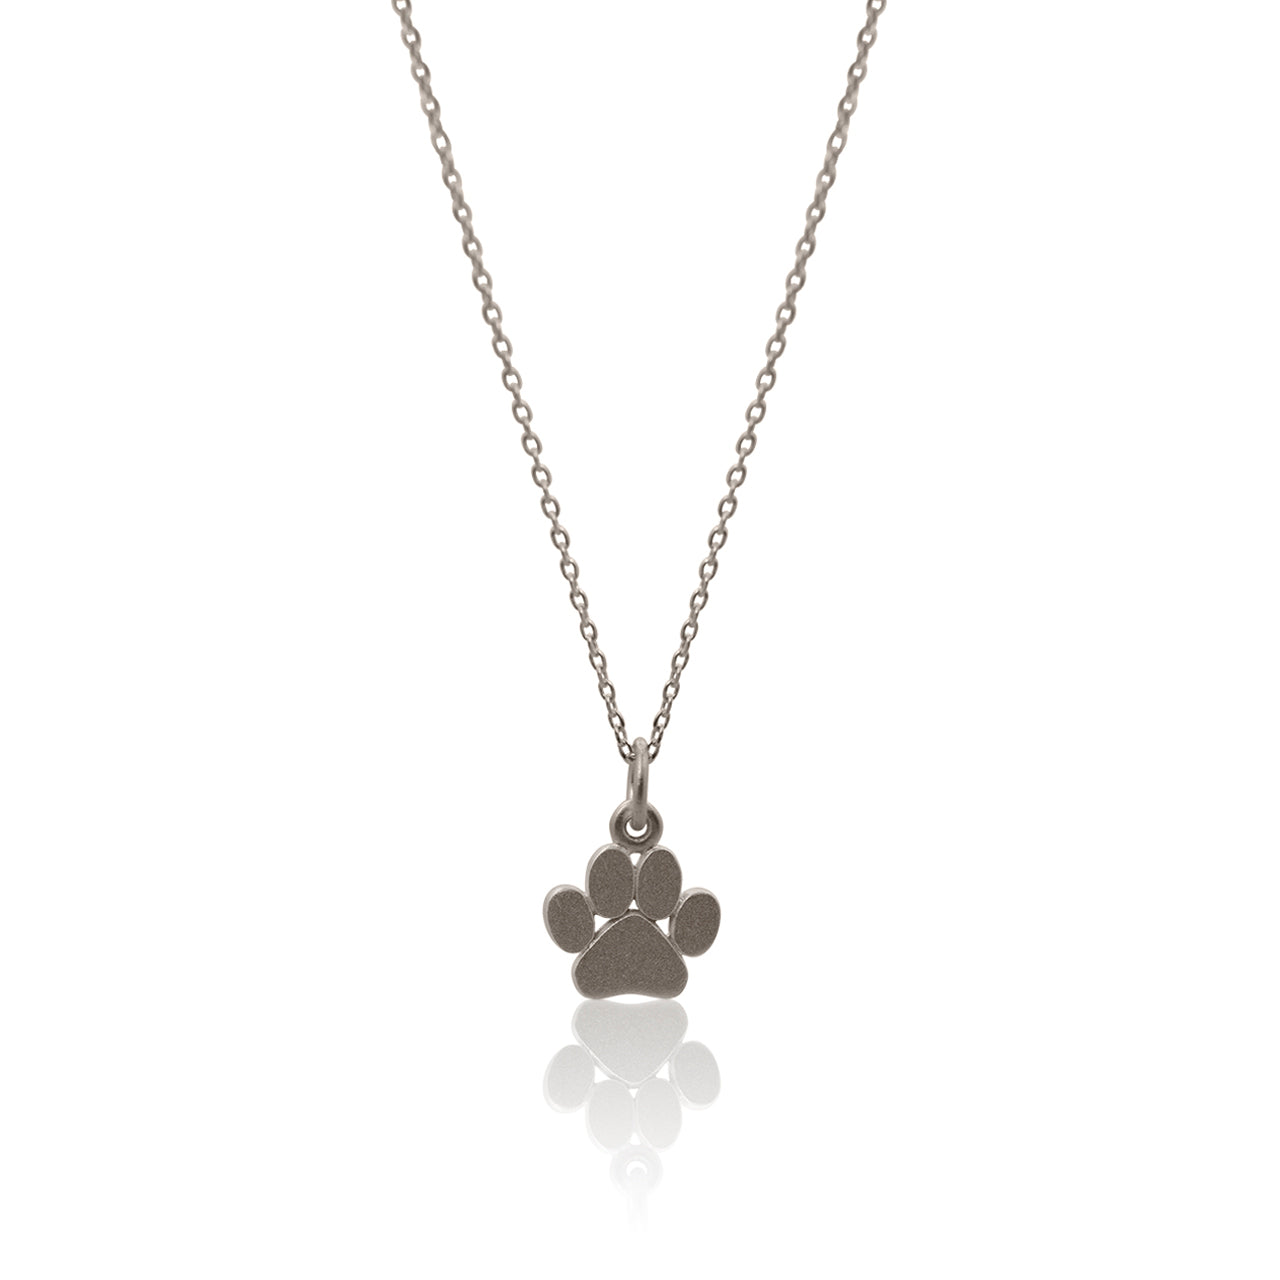 Paw Necklace - Gold